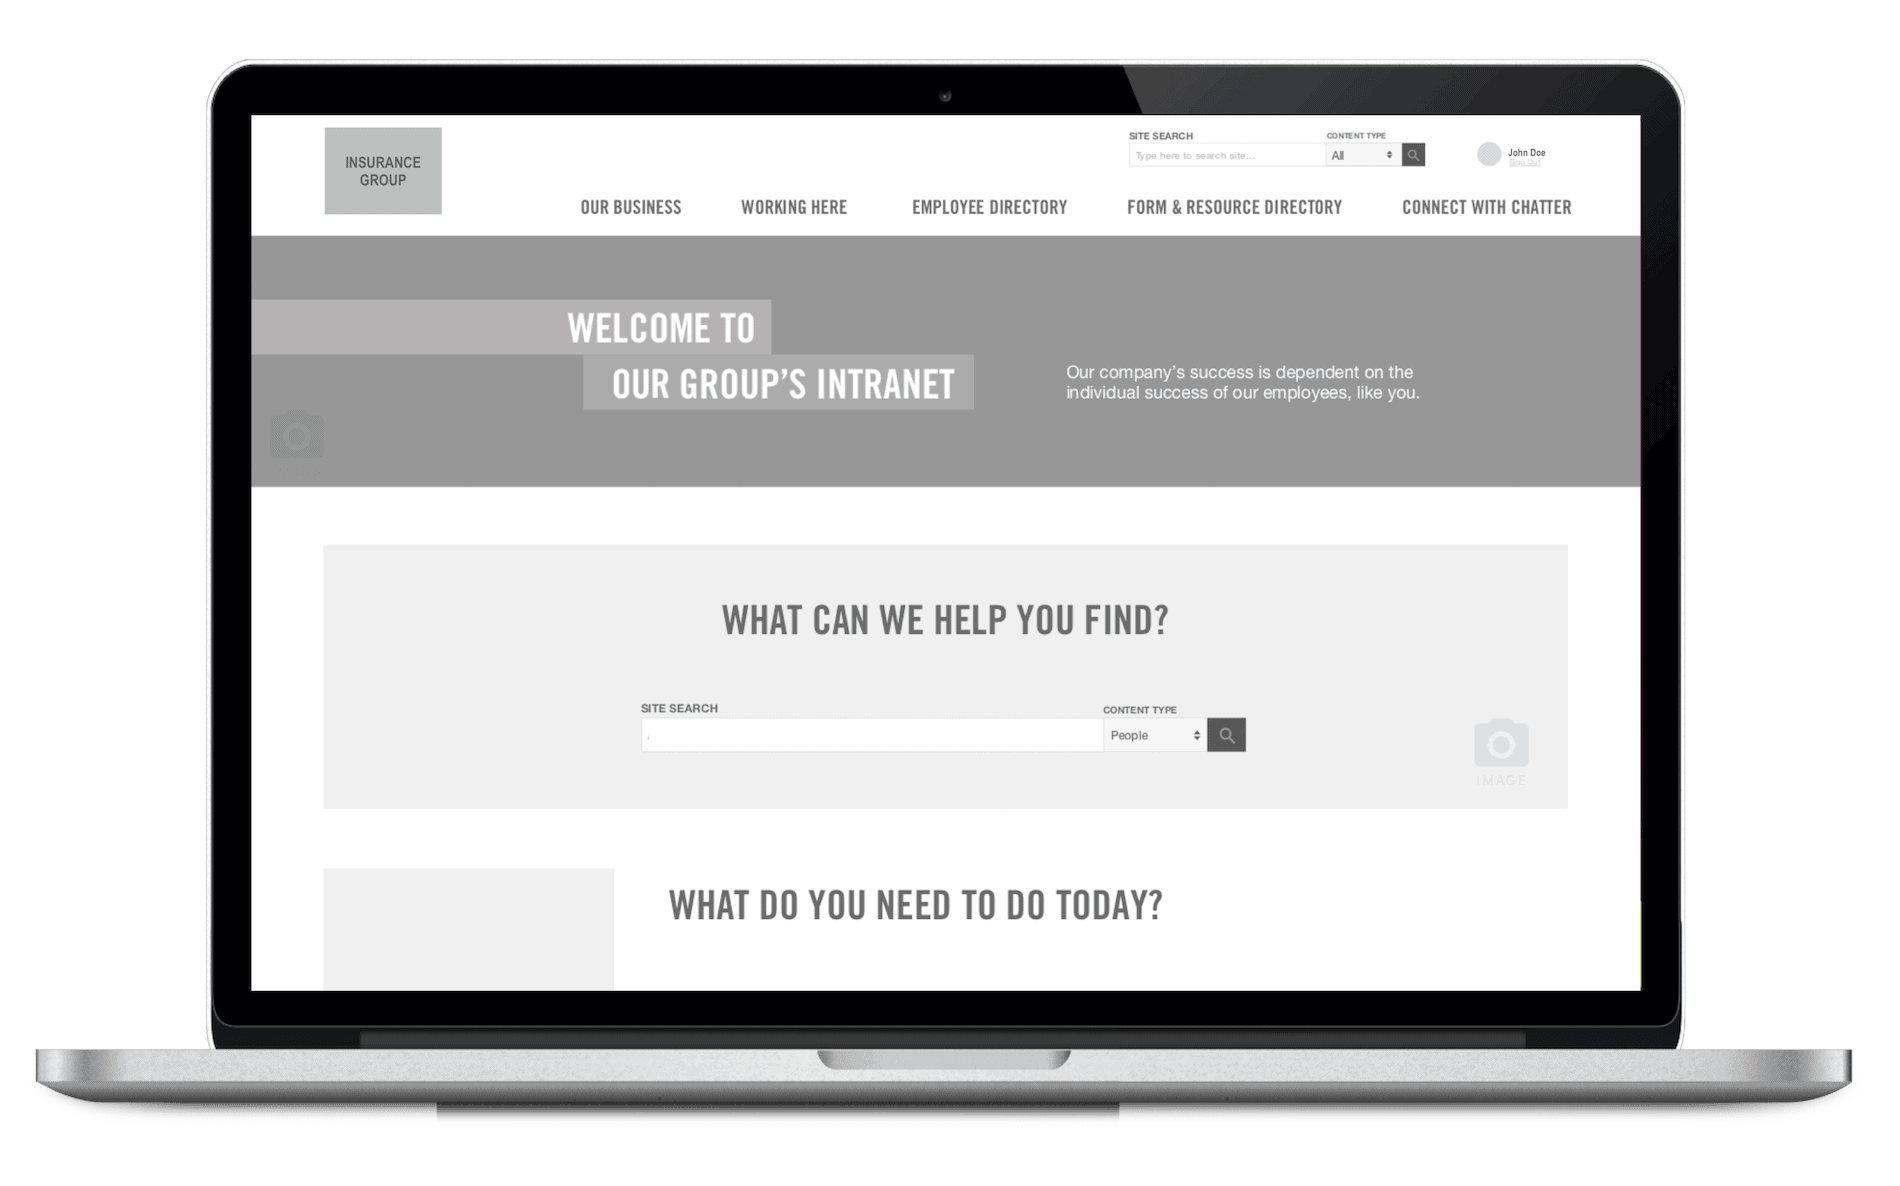 The wireframes for the insurance company's Drupal website